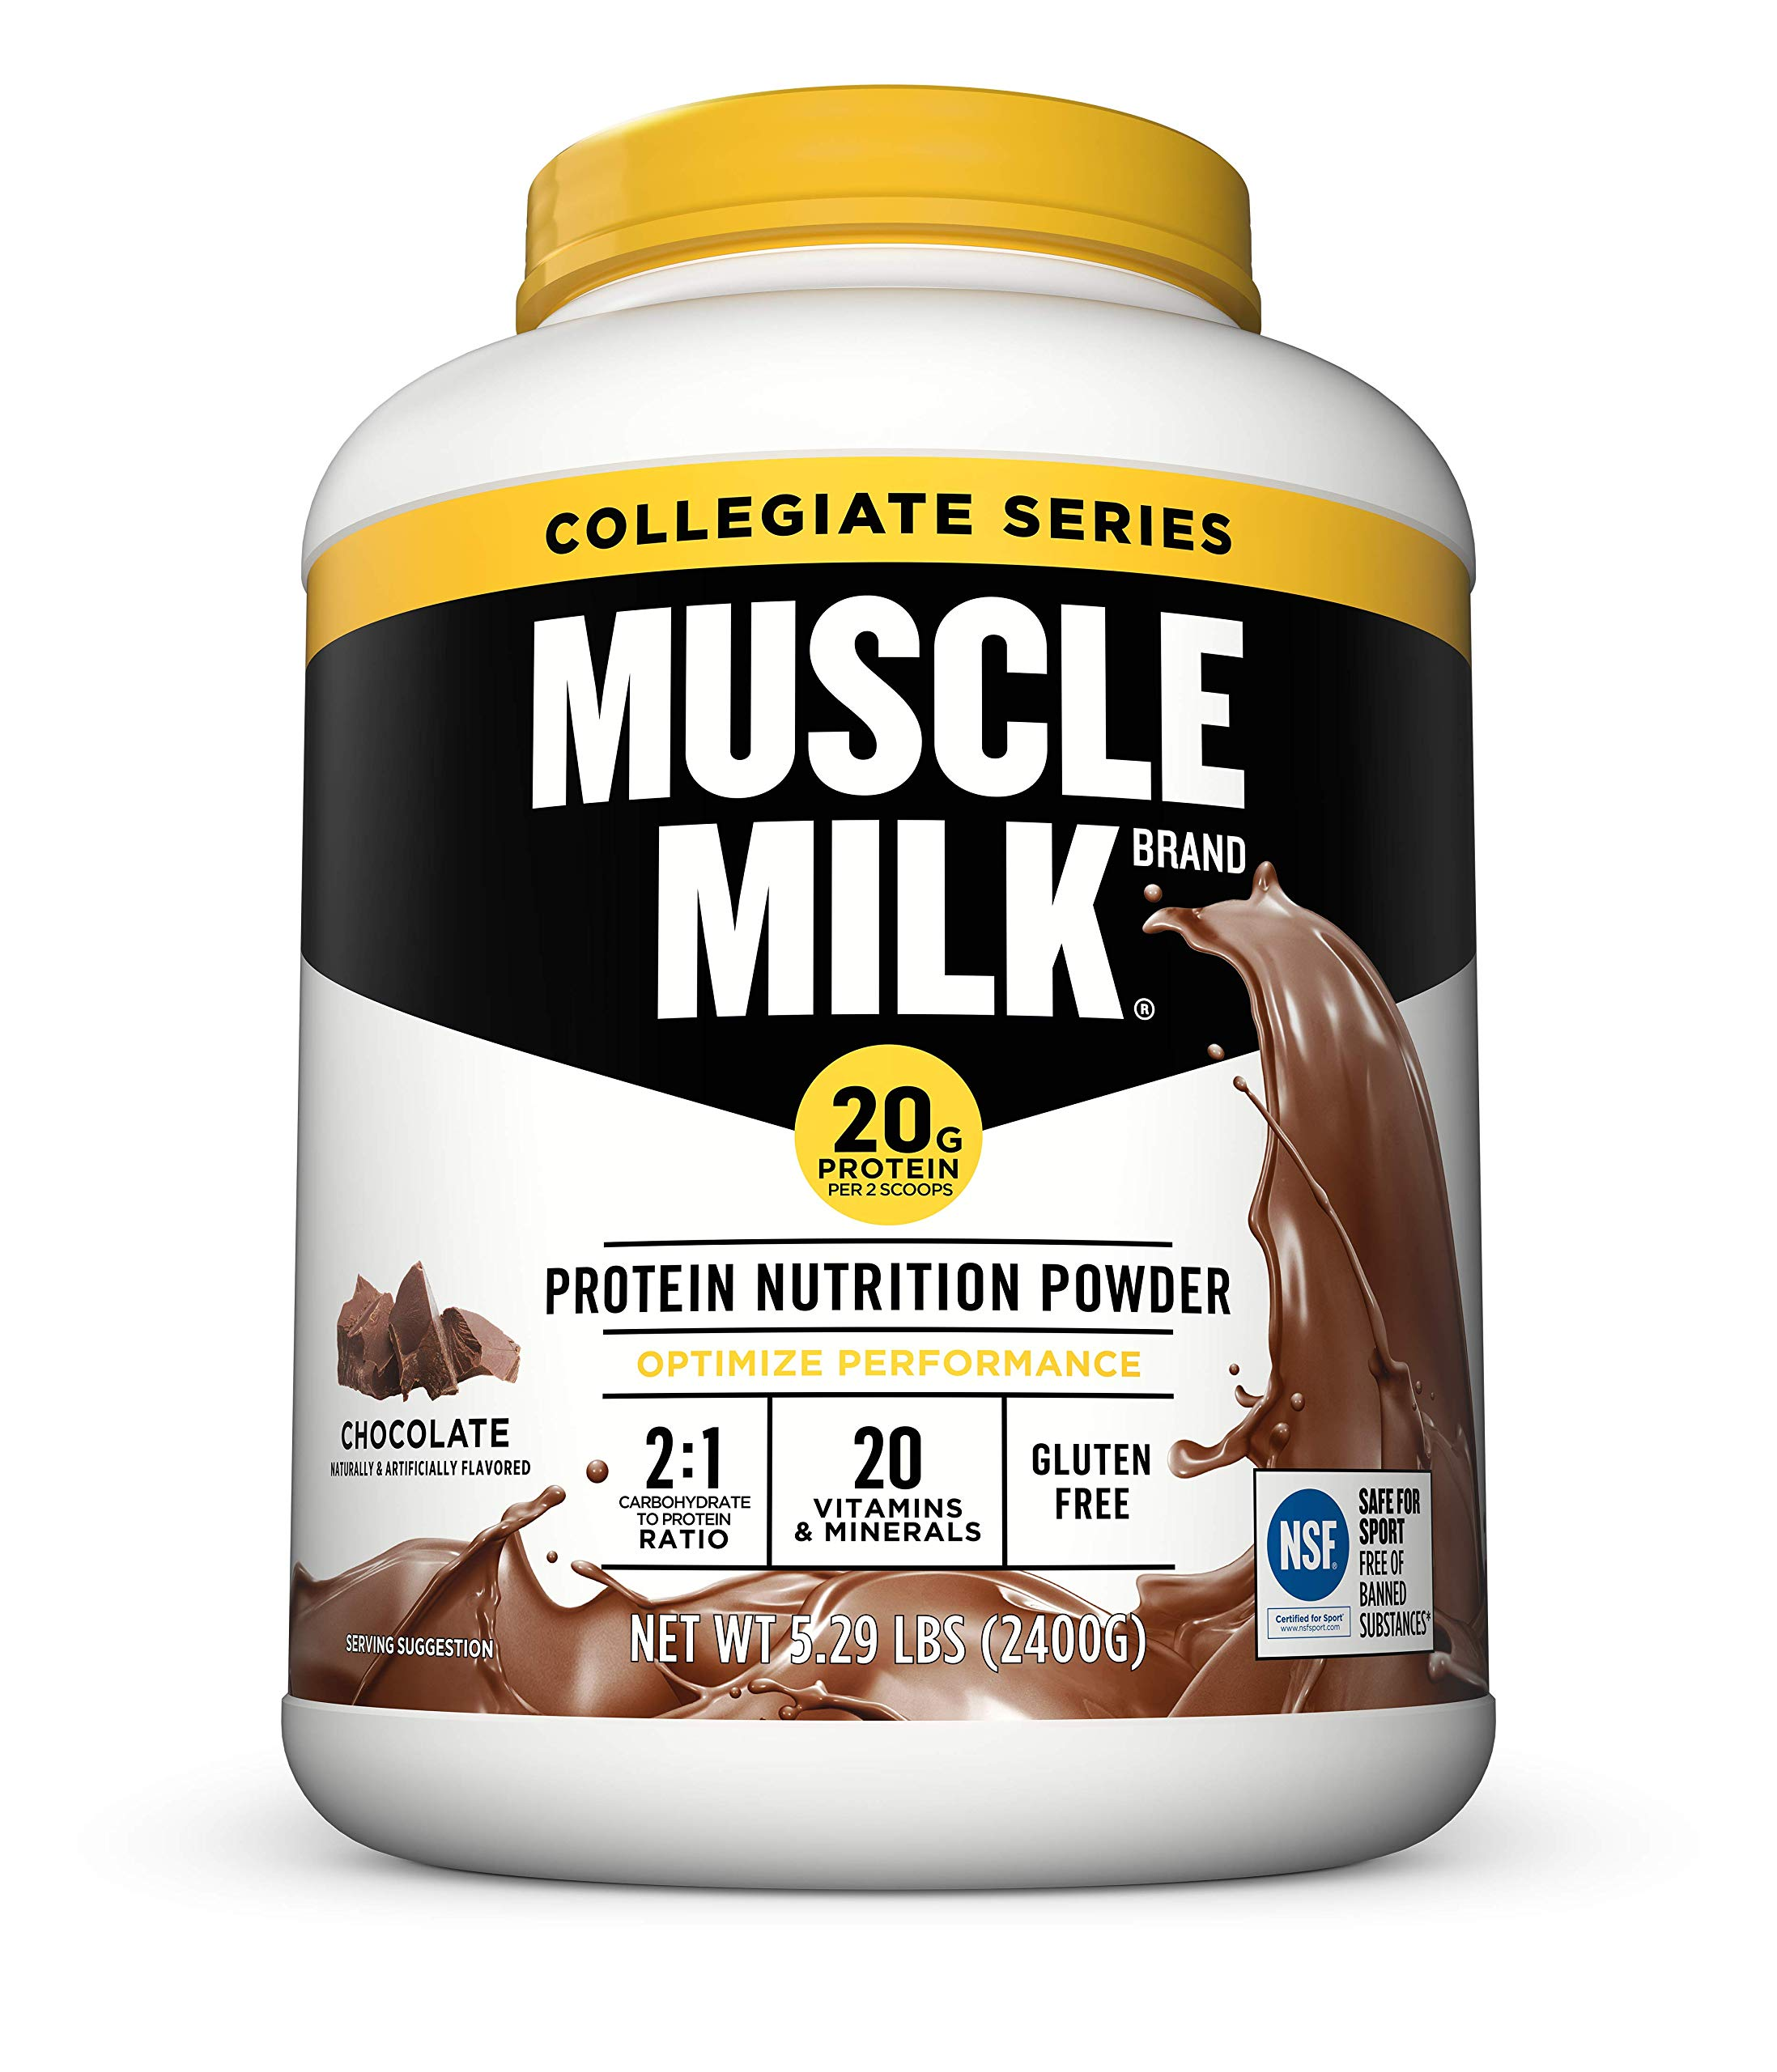 Muscle Milk Collegiate Protein Powder, Chocolate, 20g Protein, 5.29 Pound ( Pack May Vary ) by CytoSport